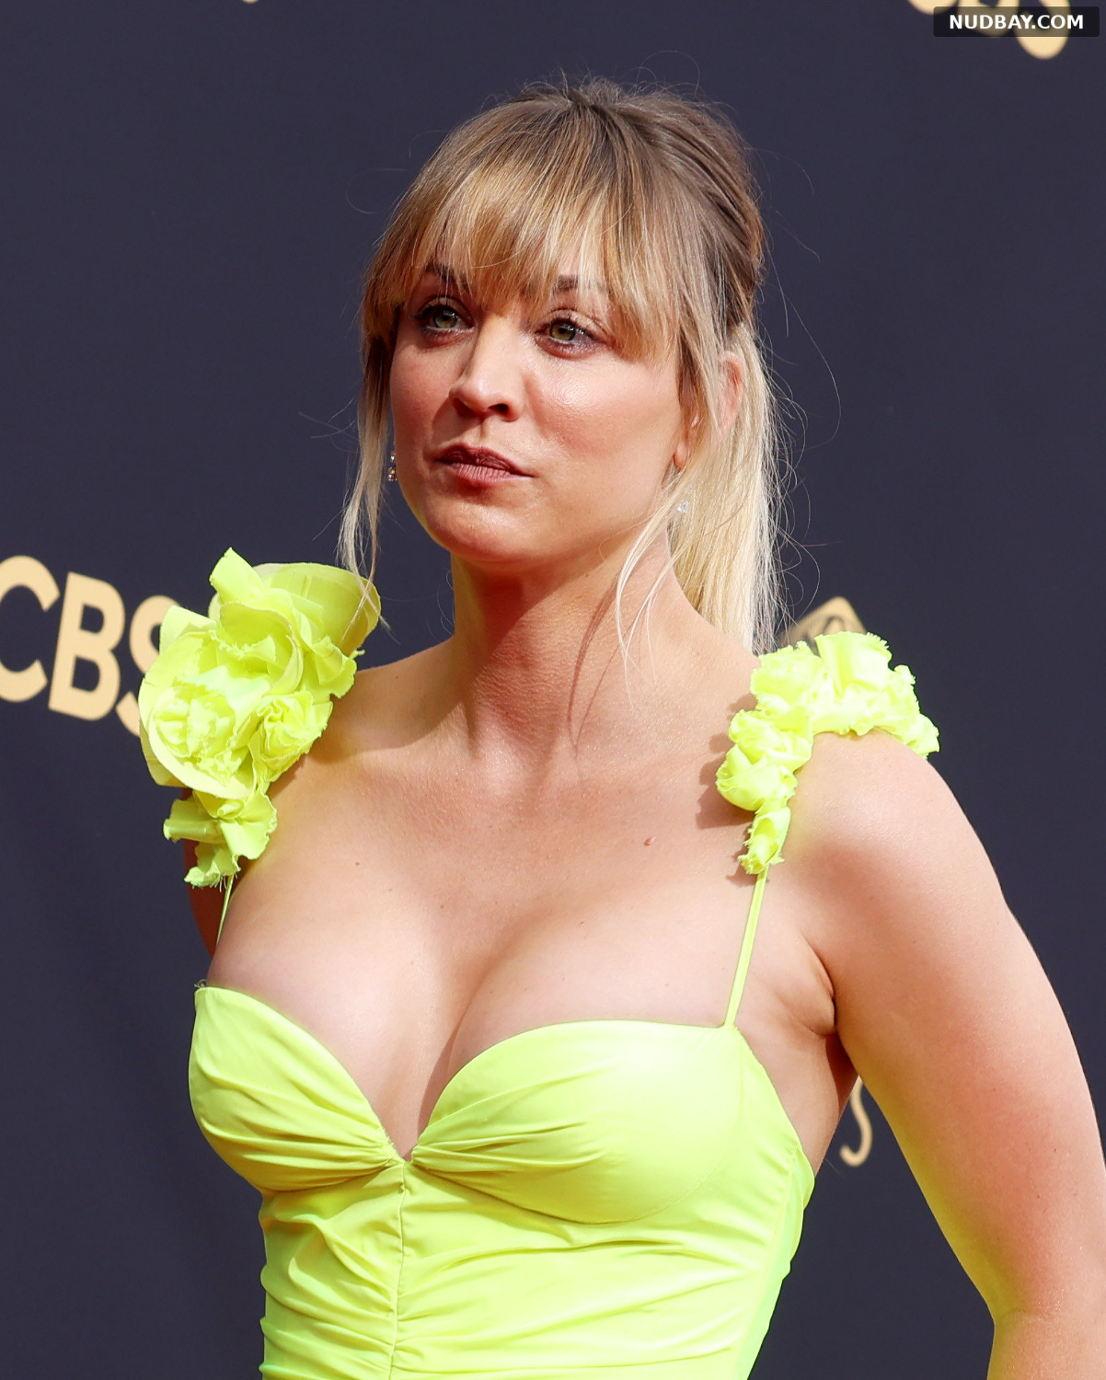 Kaley Cuoco tits 73rd Primetime Emmy Awards in Los Angeles Sep 19 2021